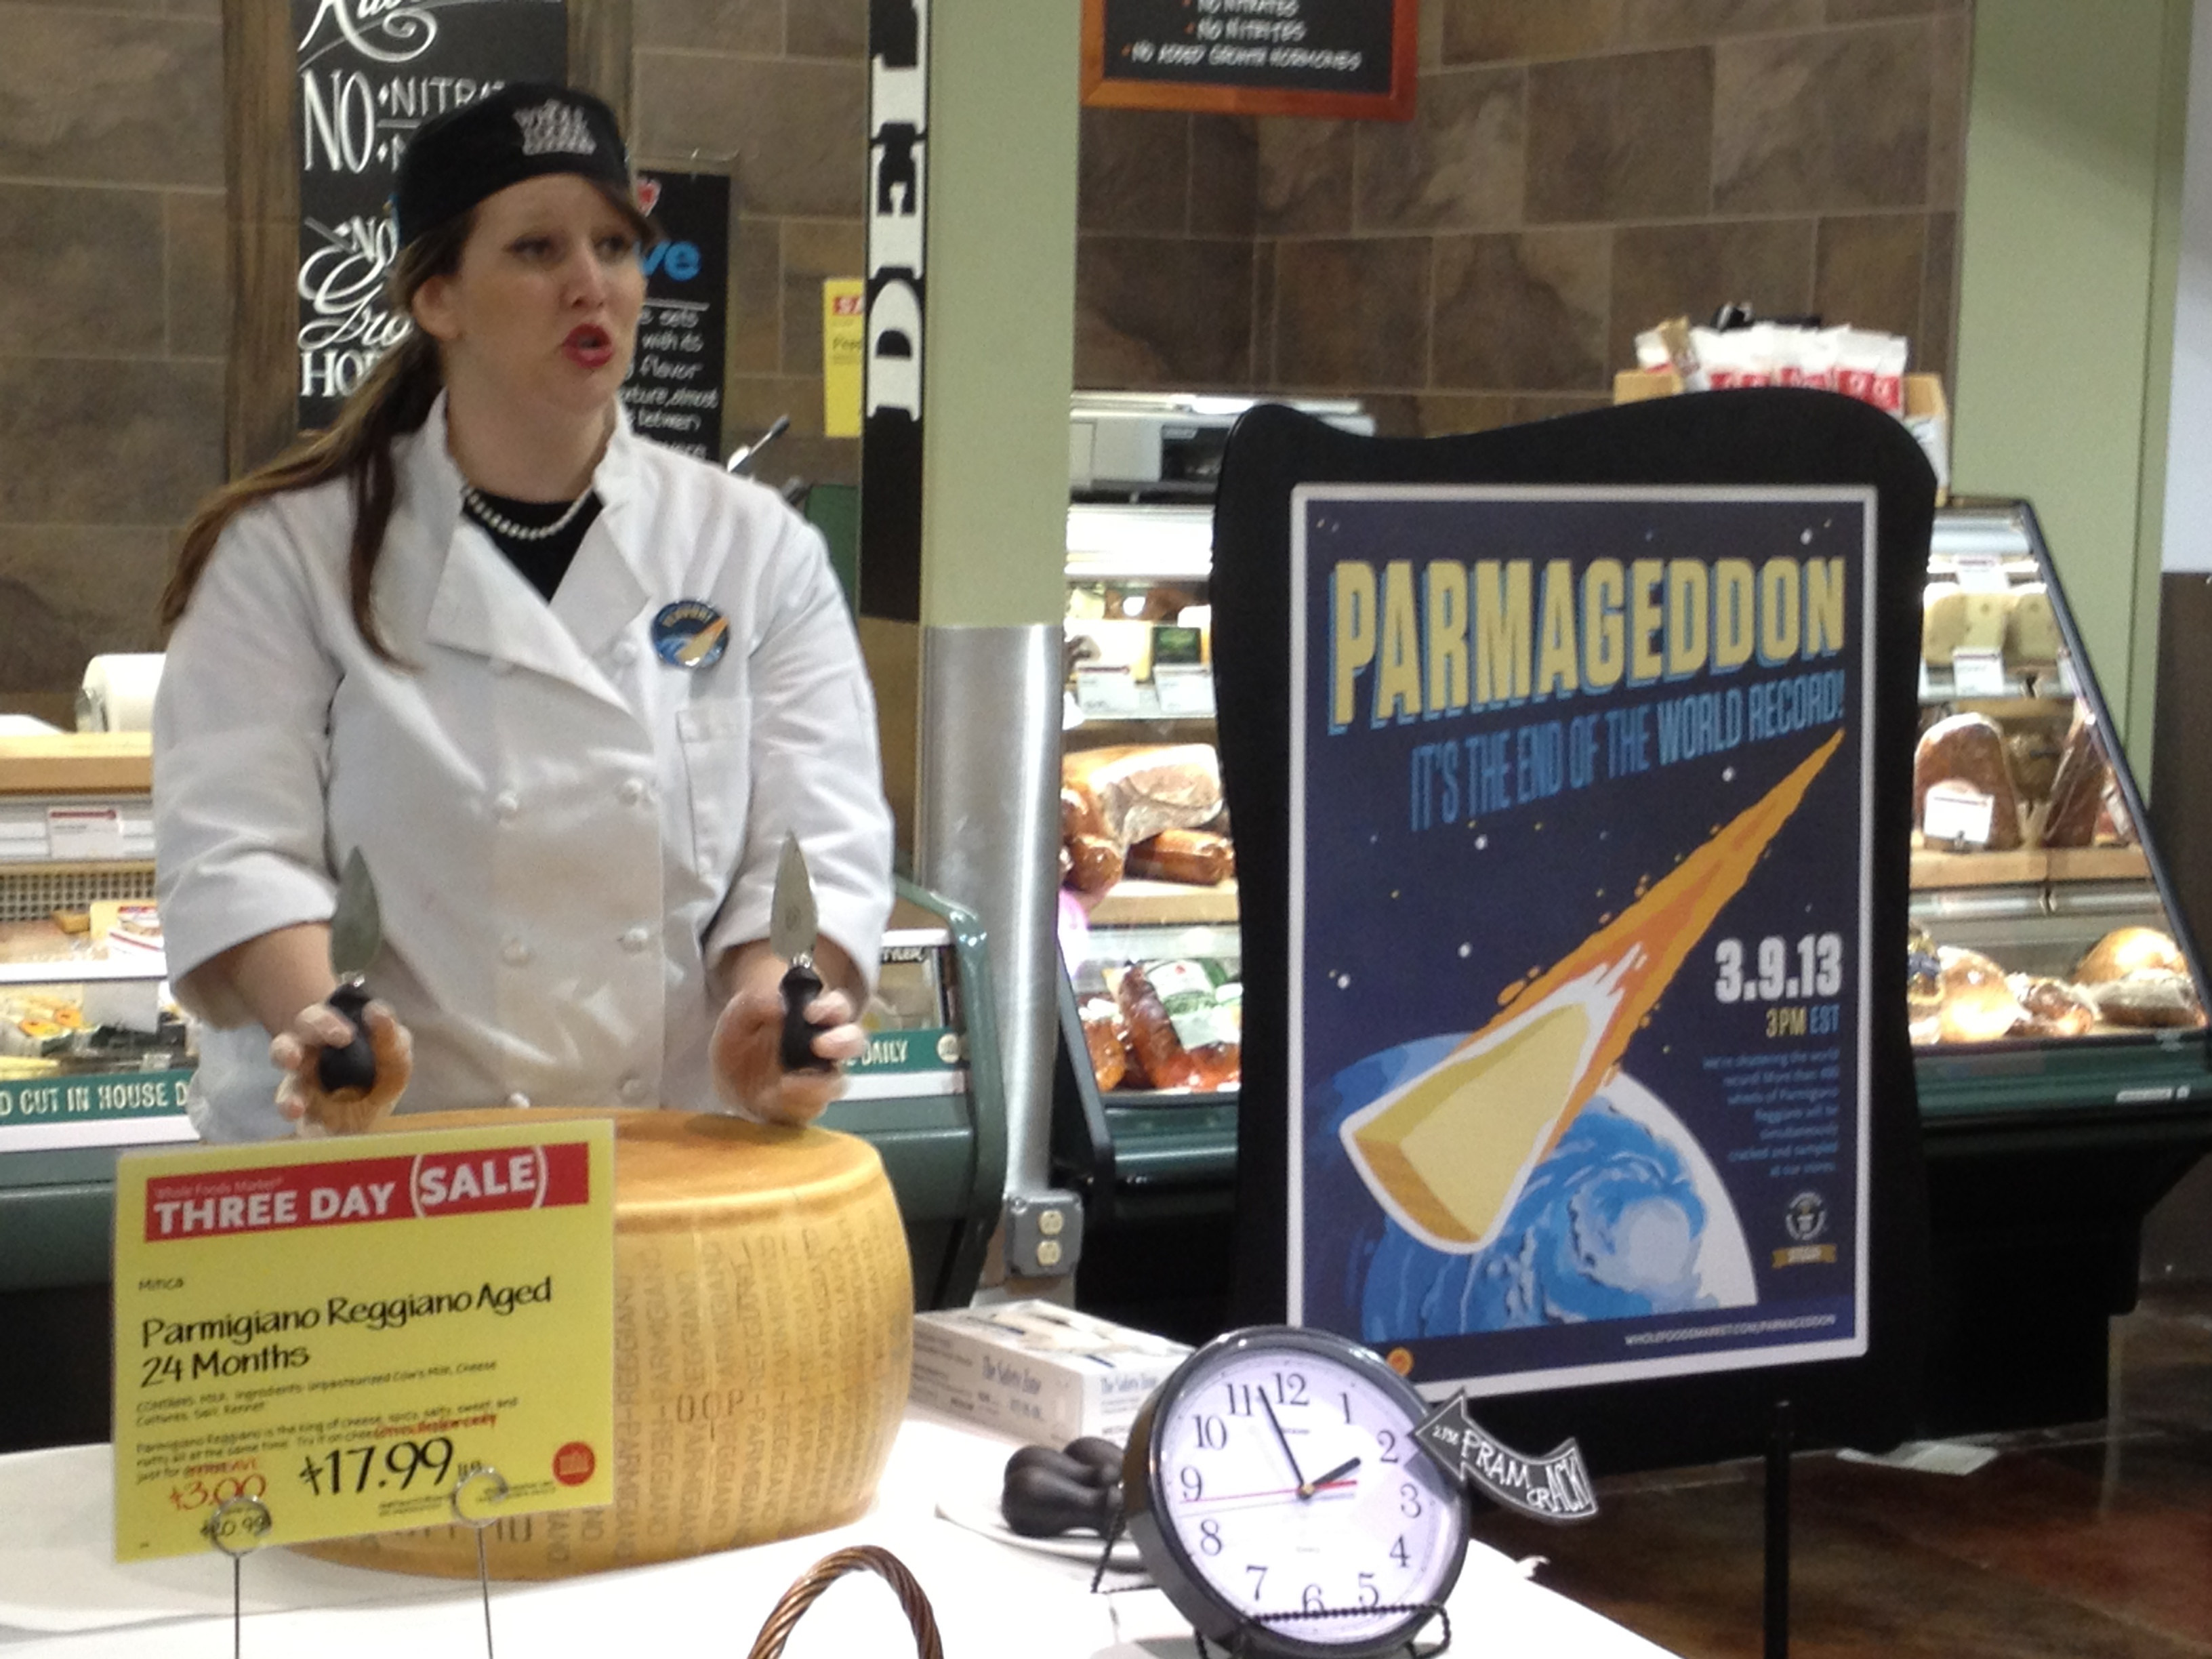 Preparing to break open a wheel of Parmigiano-Reggiano cheese at Whole Foods Market in Overland Park, Kansas